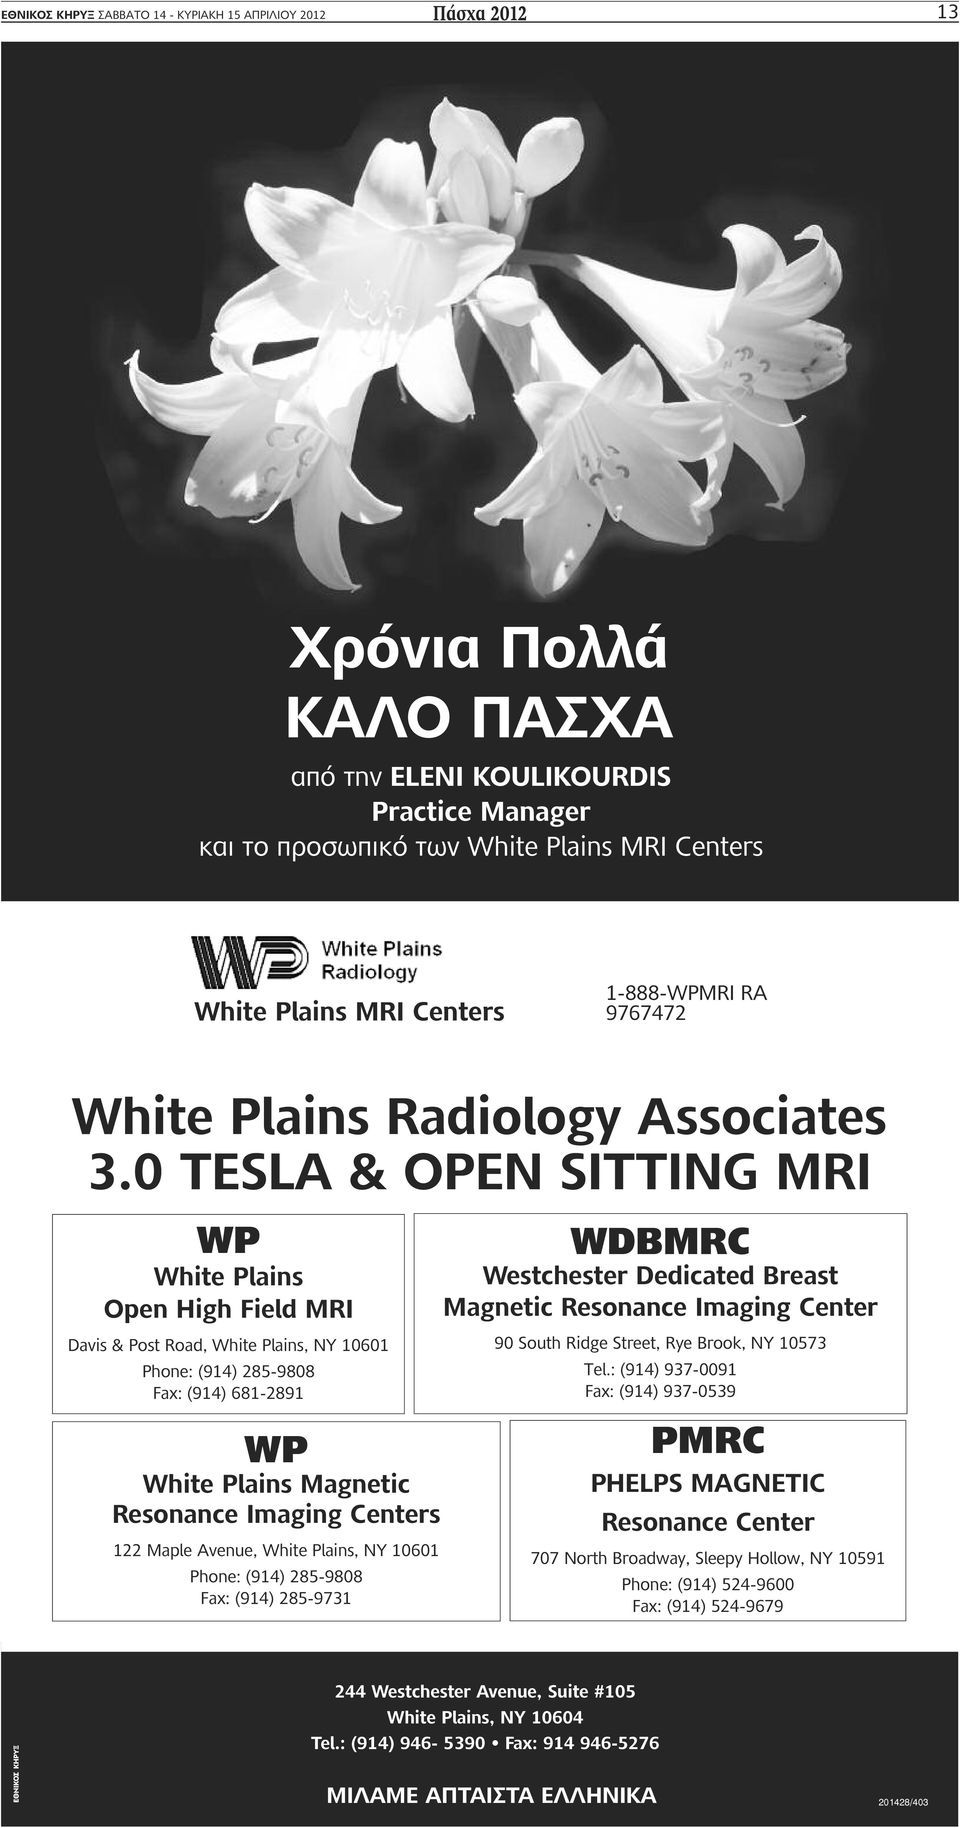 0 TESLA & OPEN SITTING MRI WP White Plains Open High Field MRI Davis & Post Road, White Plains, NY 10601 Phone: (914) 285-9808 Fax: (914) 681-2891 WDBMRC Westchester Dedicated Breast Magnetic